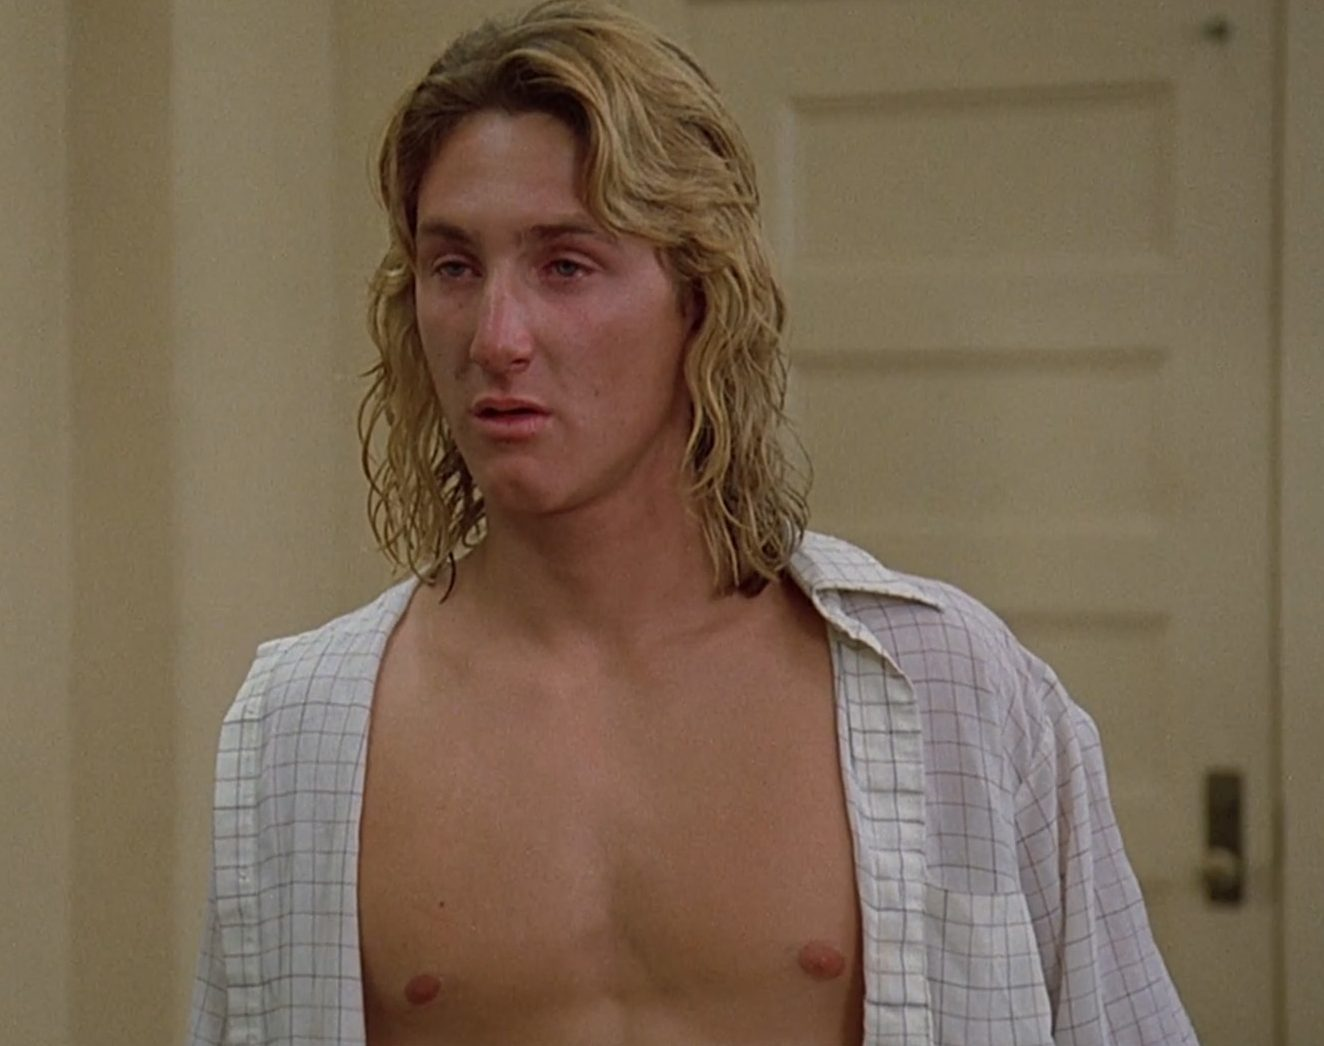 sean penn fast times at ridgemont high e1625062360193 25 Facts You Probably Never Knew About Fast Times At Ridgemont High!